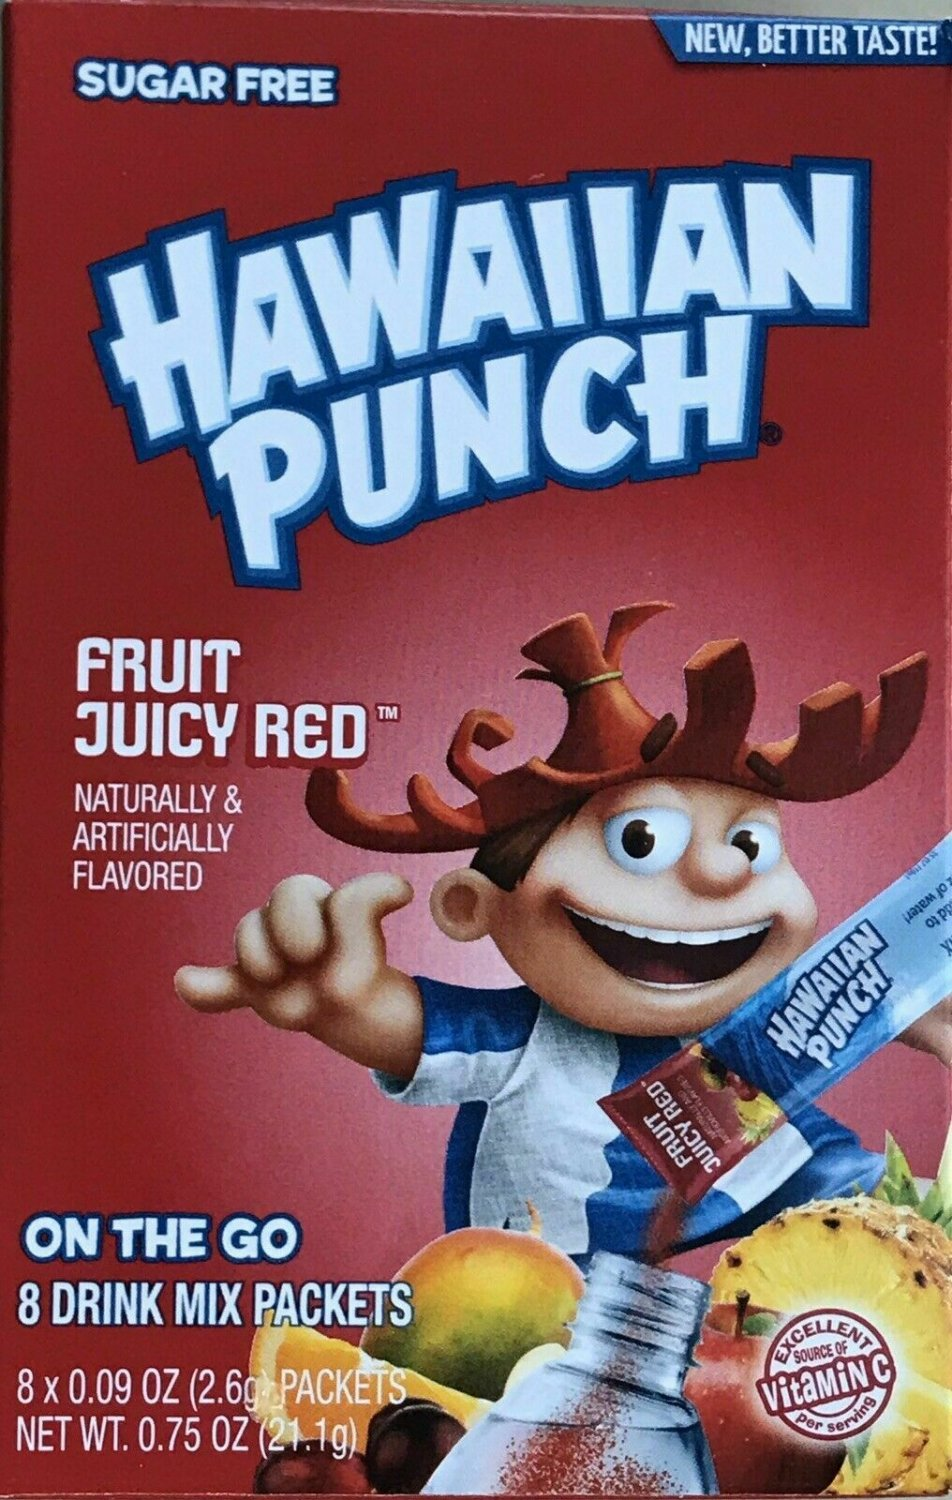 10 Boxes (80 Packets) Of Hawaiian Punch Fruit Juicy Red Singles to Go Sugar Free Drink Mix